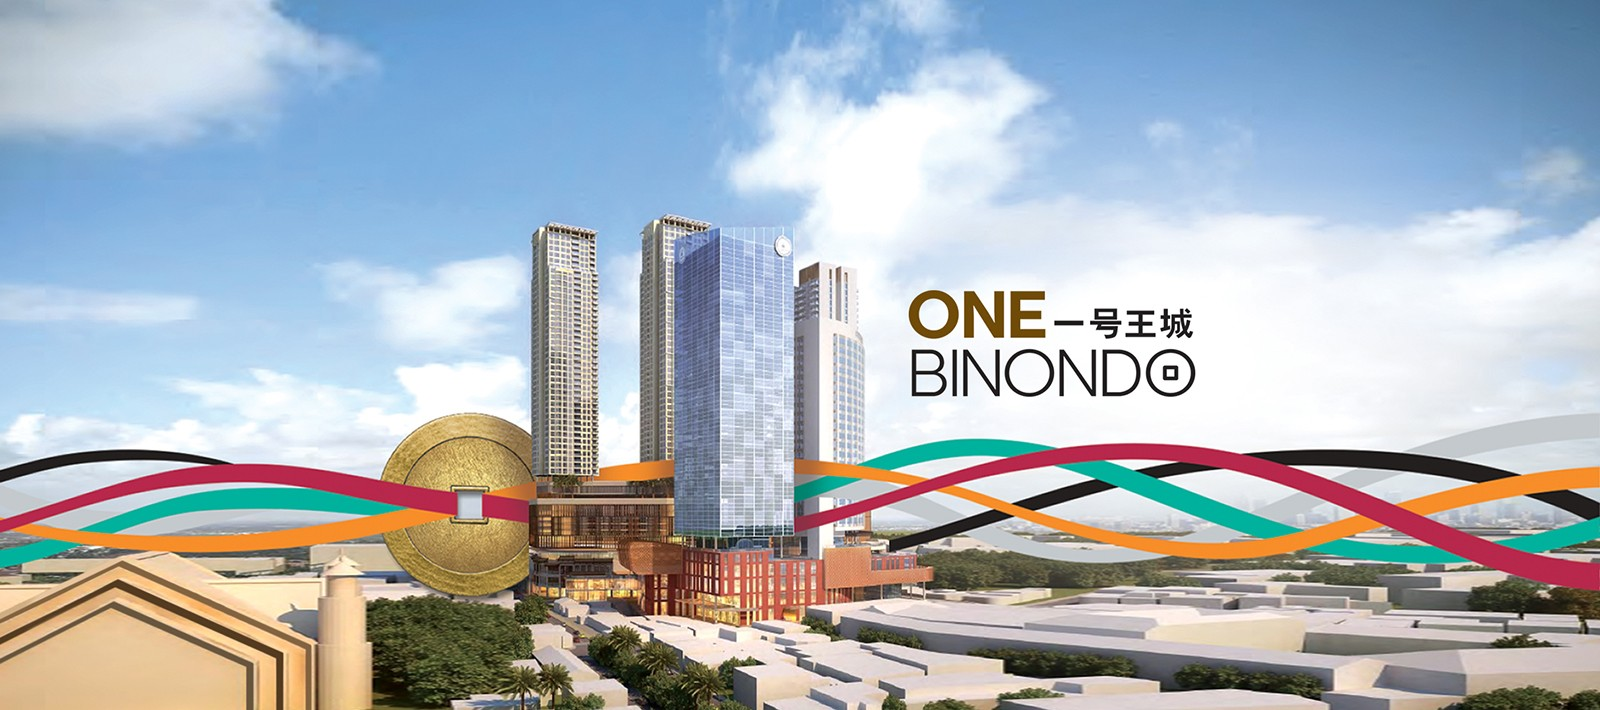 One-binondo-property-destination-branding-2